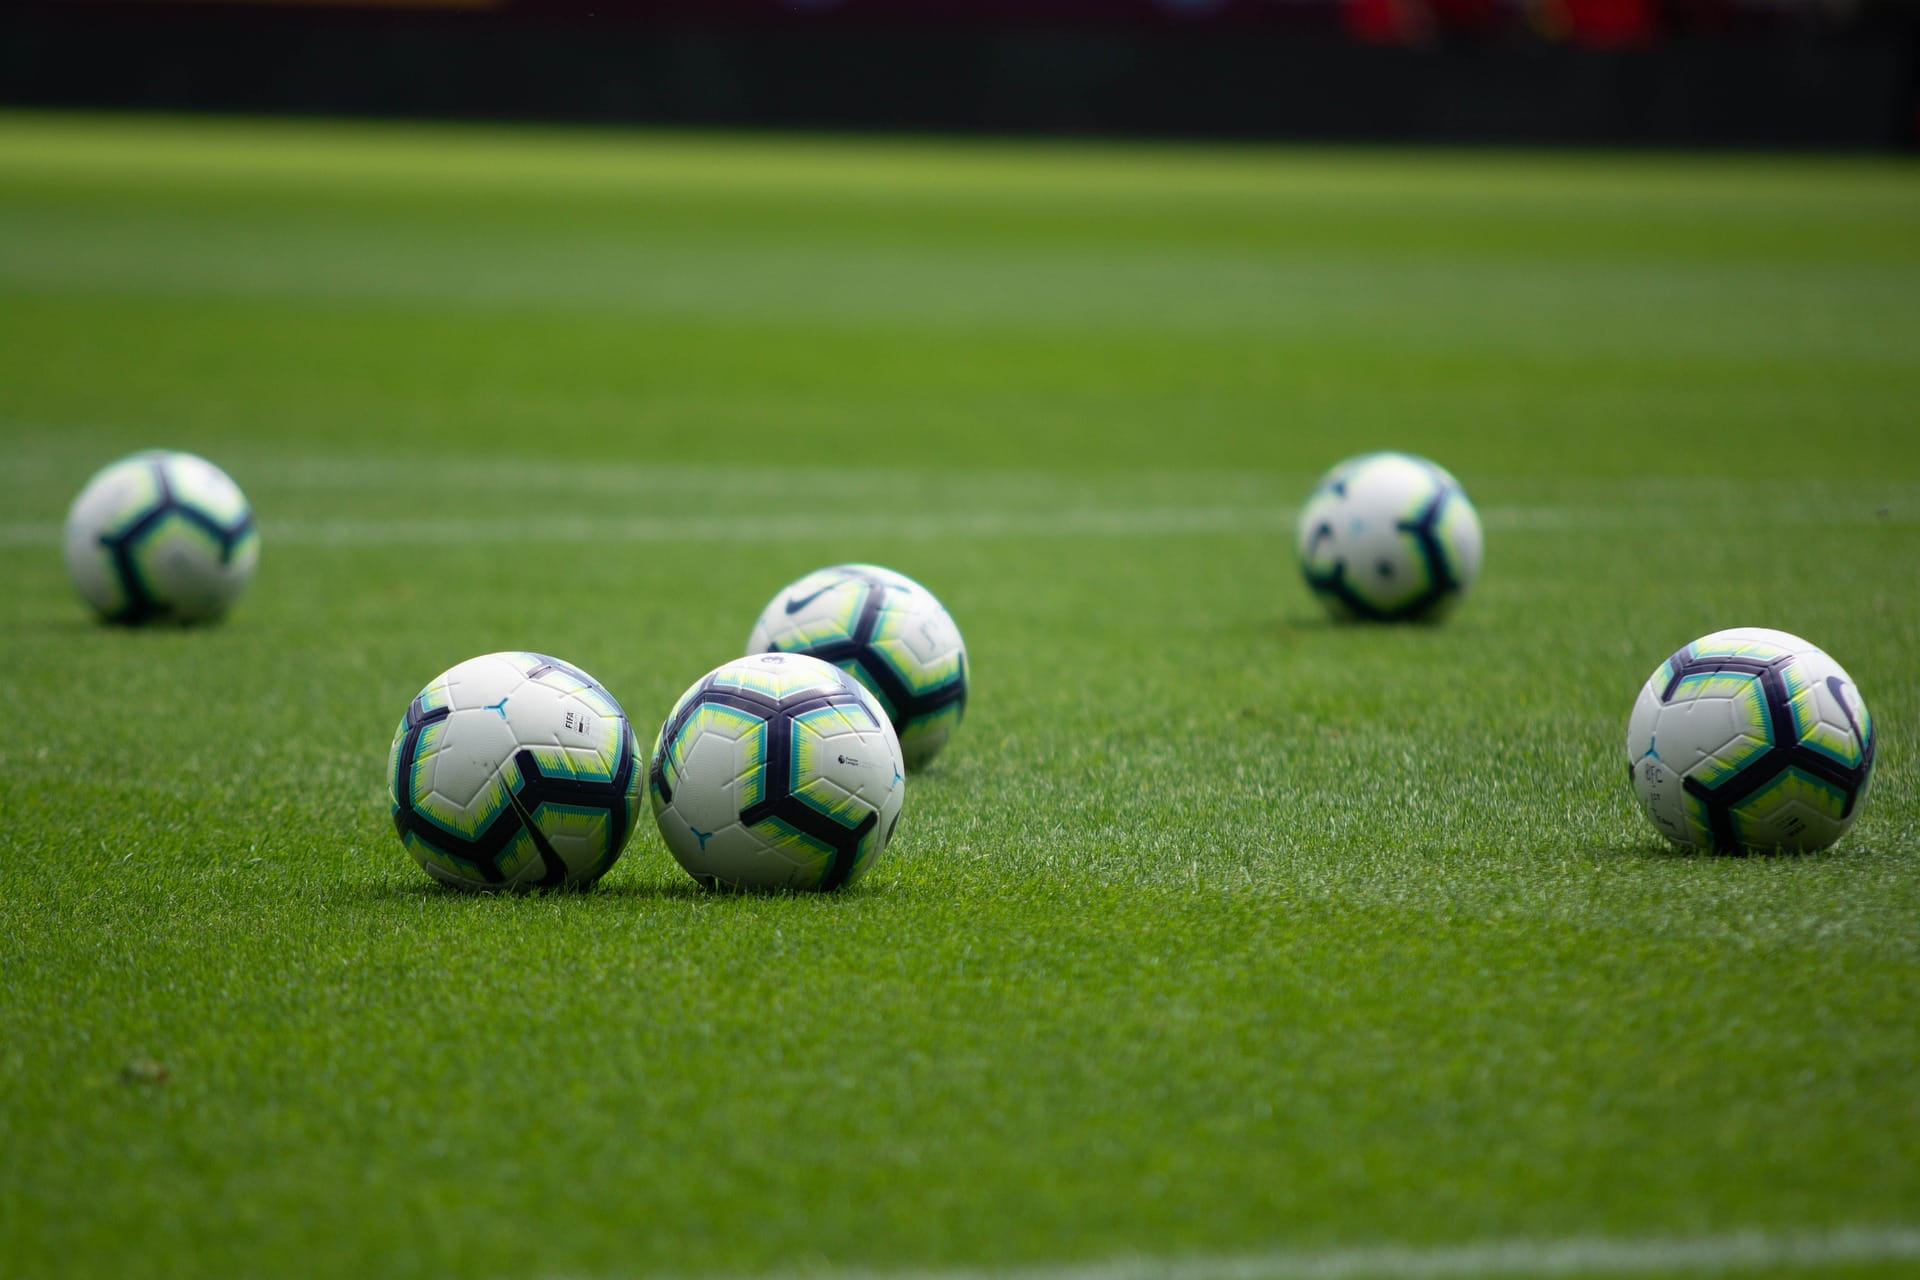 footballs on pitch